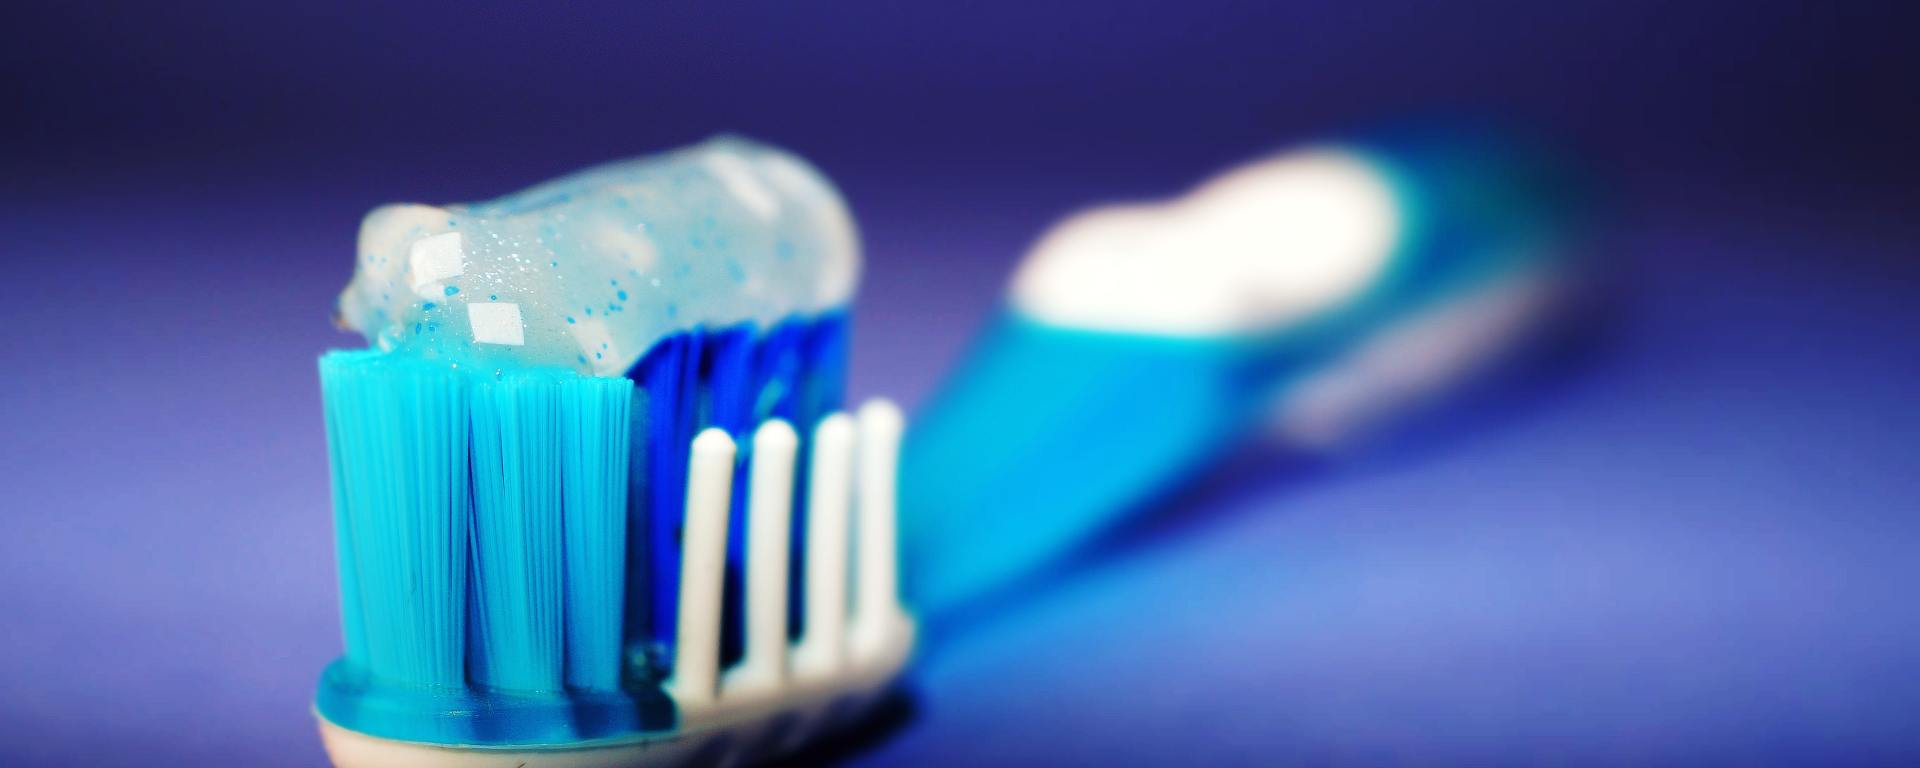 closeup of a blue and white toothbrush on blue backdrop